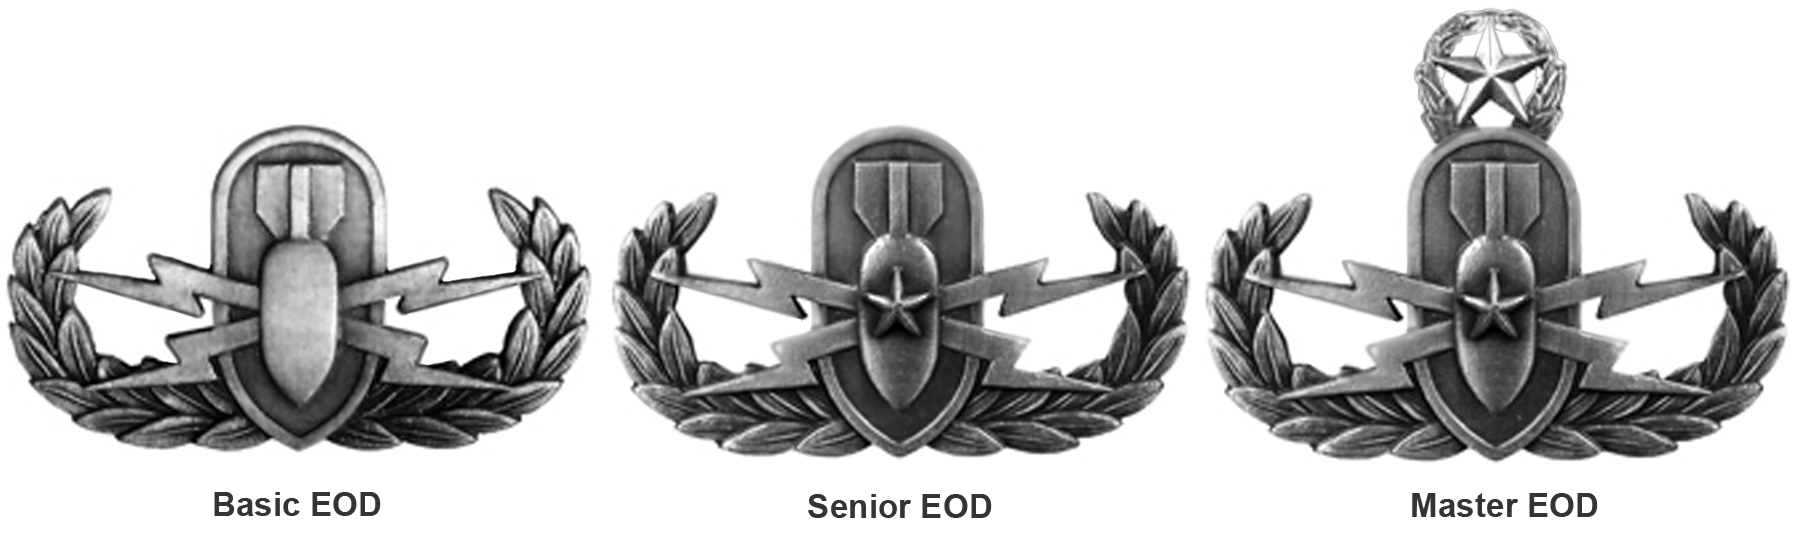 File:EOD Insignia.png.